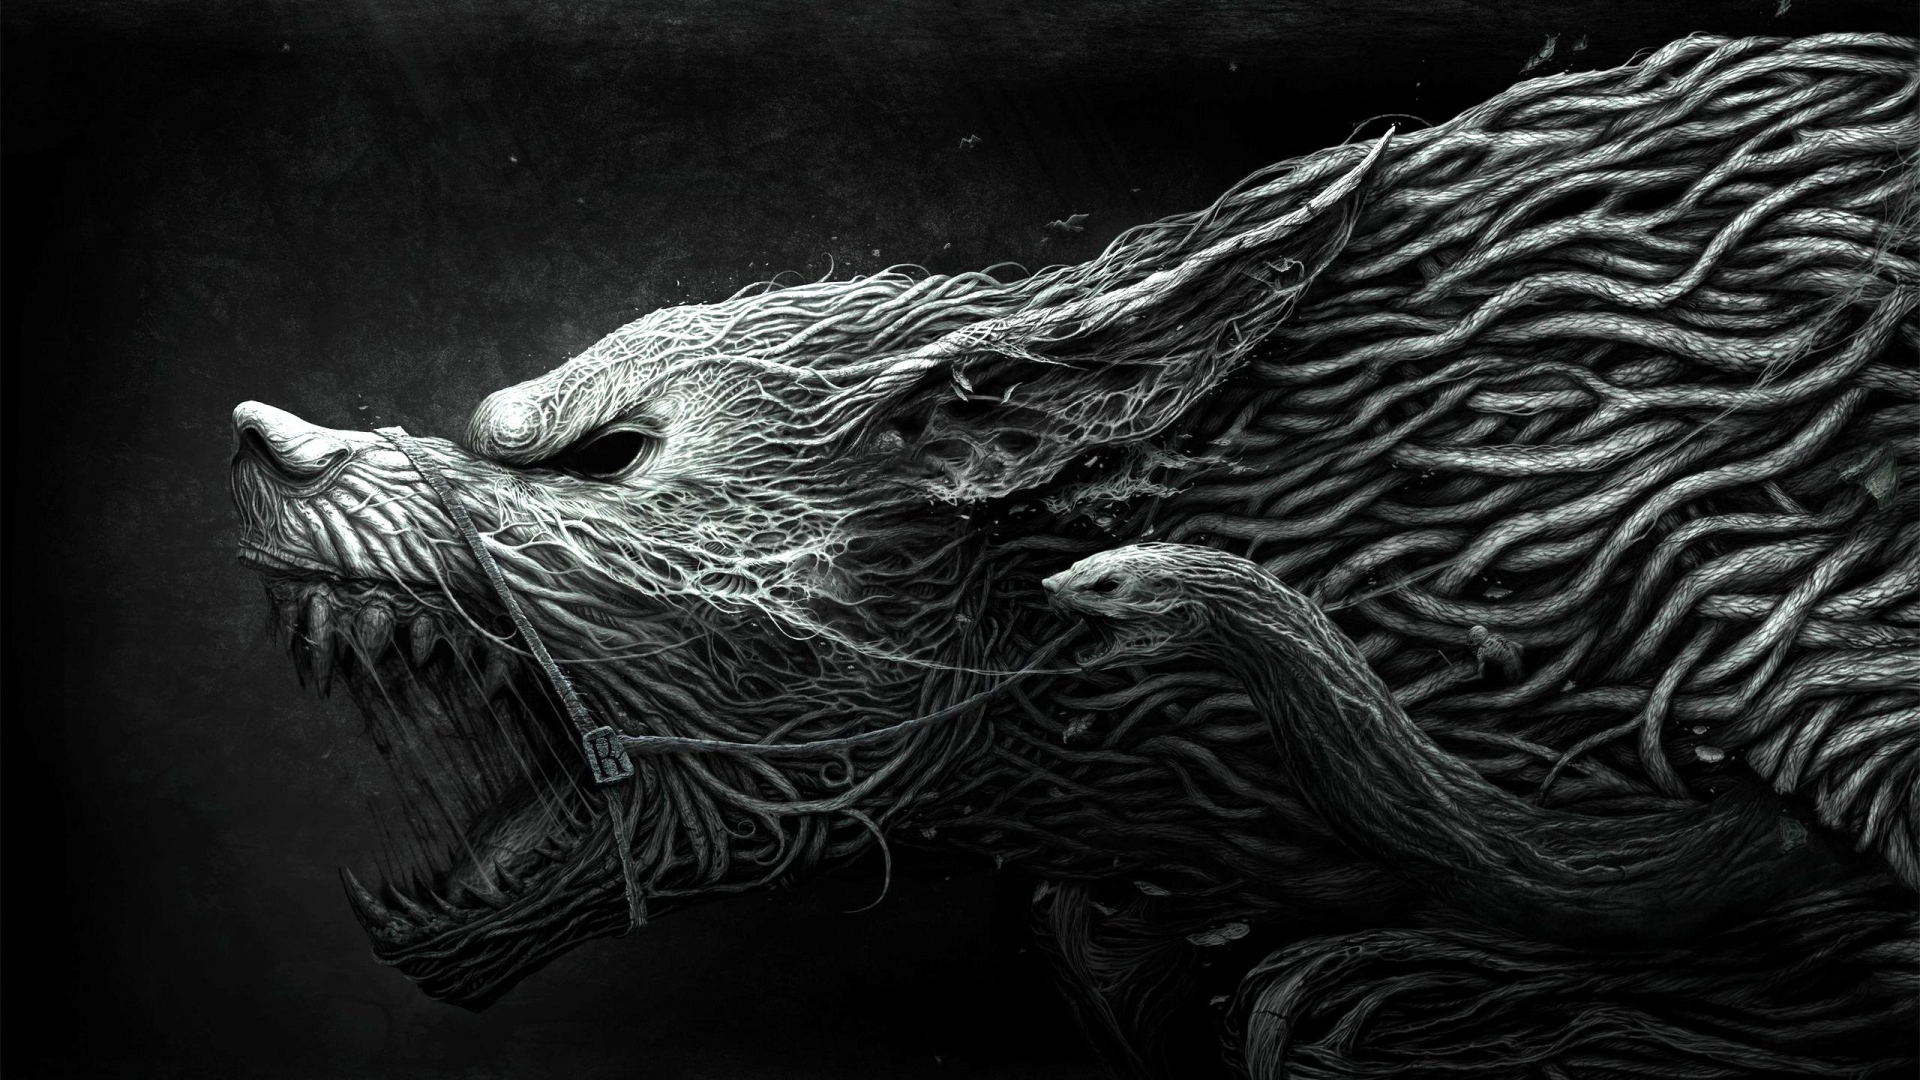 Best wallpaper hd p free download ×  wolf  Page  1920x1080